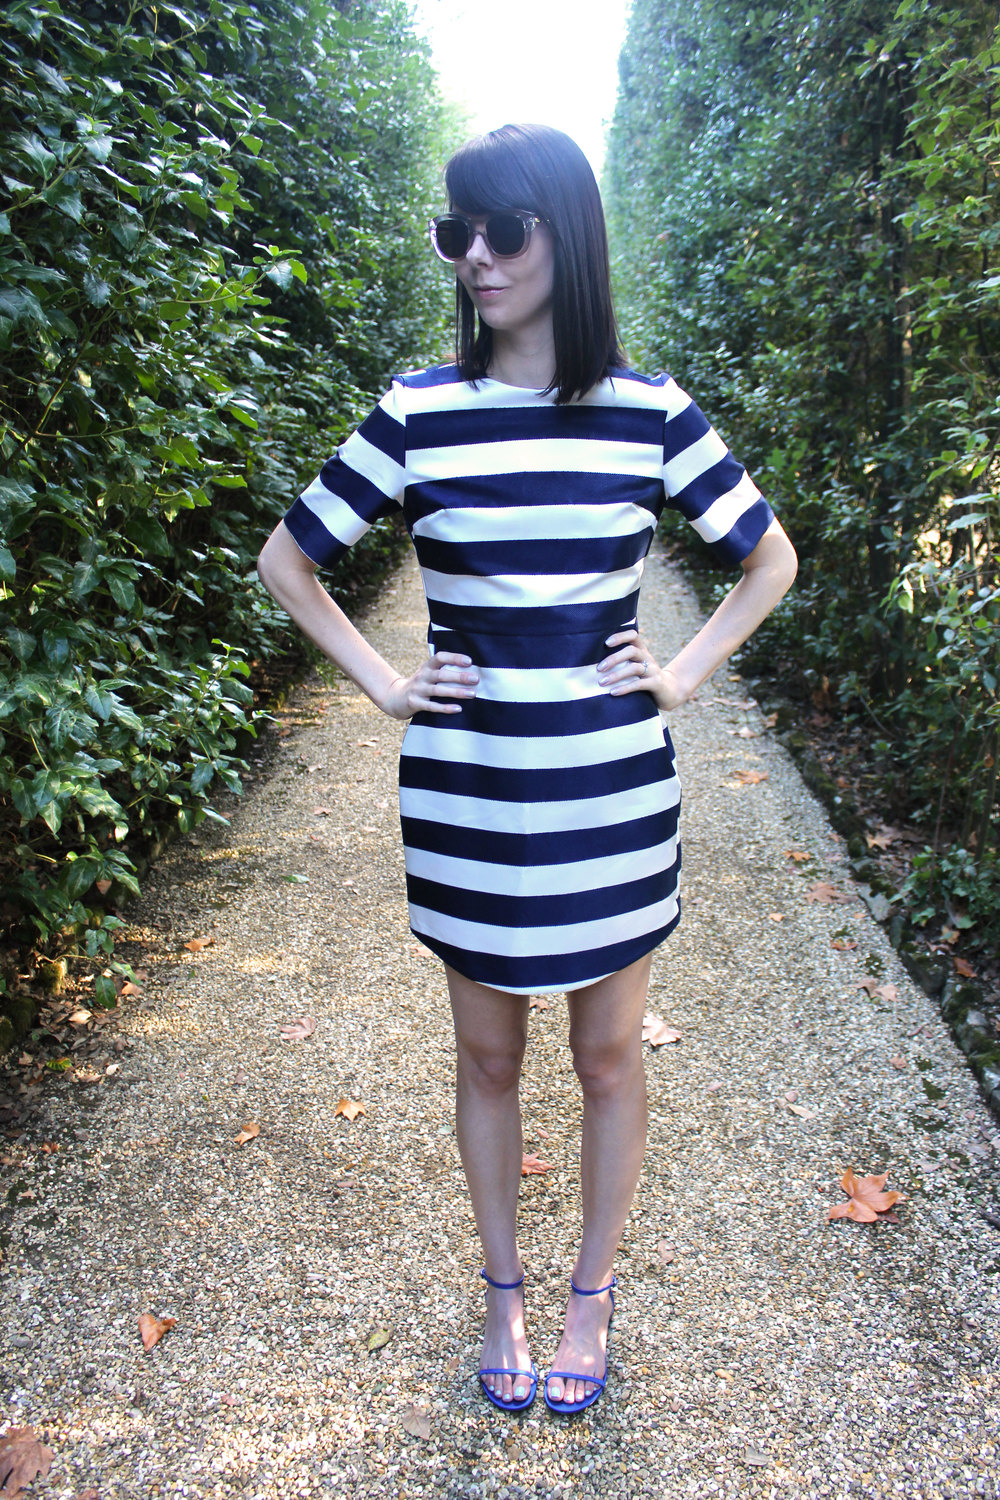 Wearing a striped Topshop shift dress and M.Gemi shoes at the Boboli Gardens in Florence.